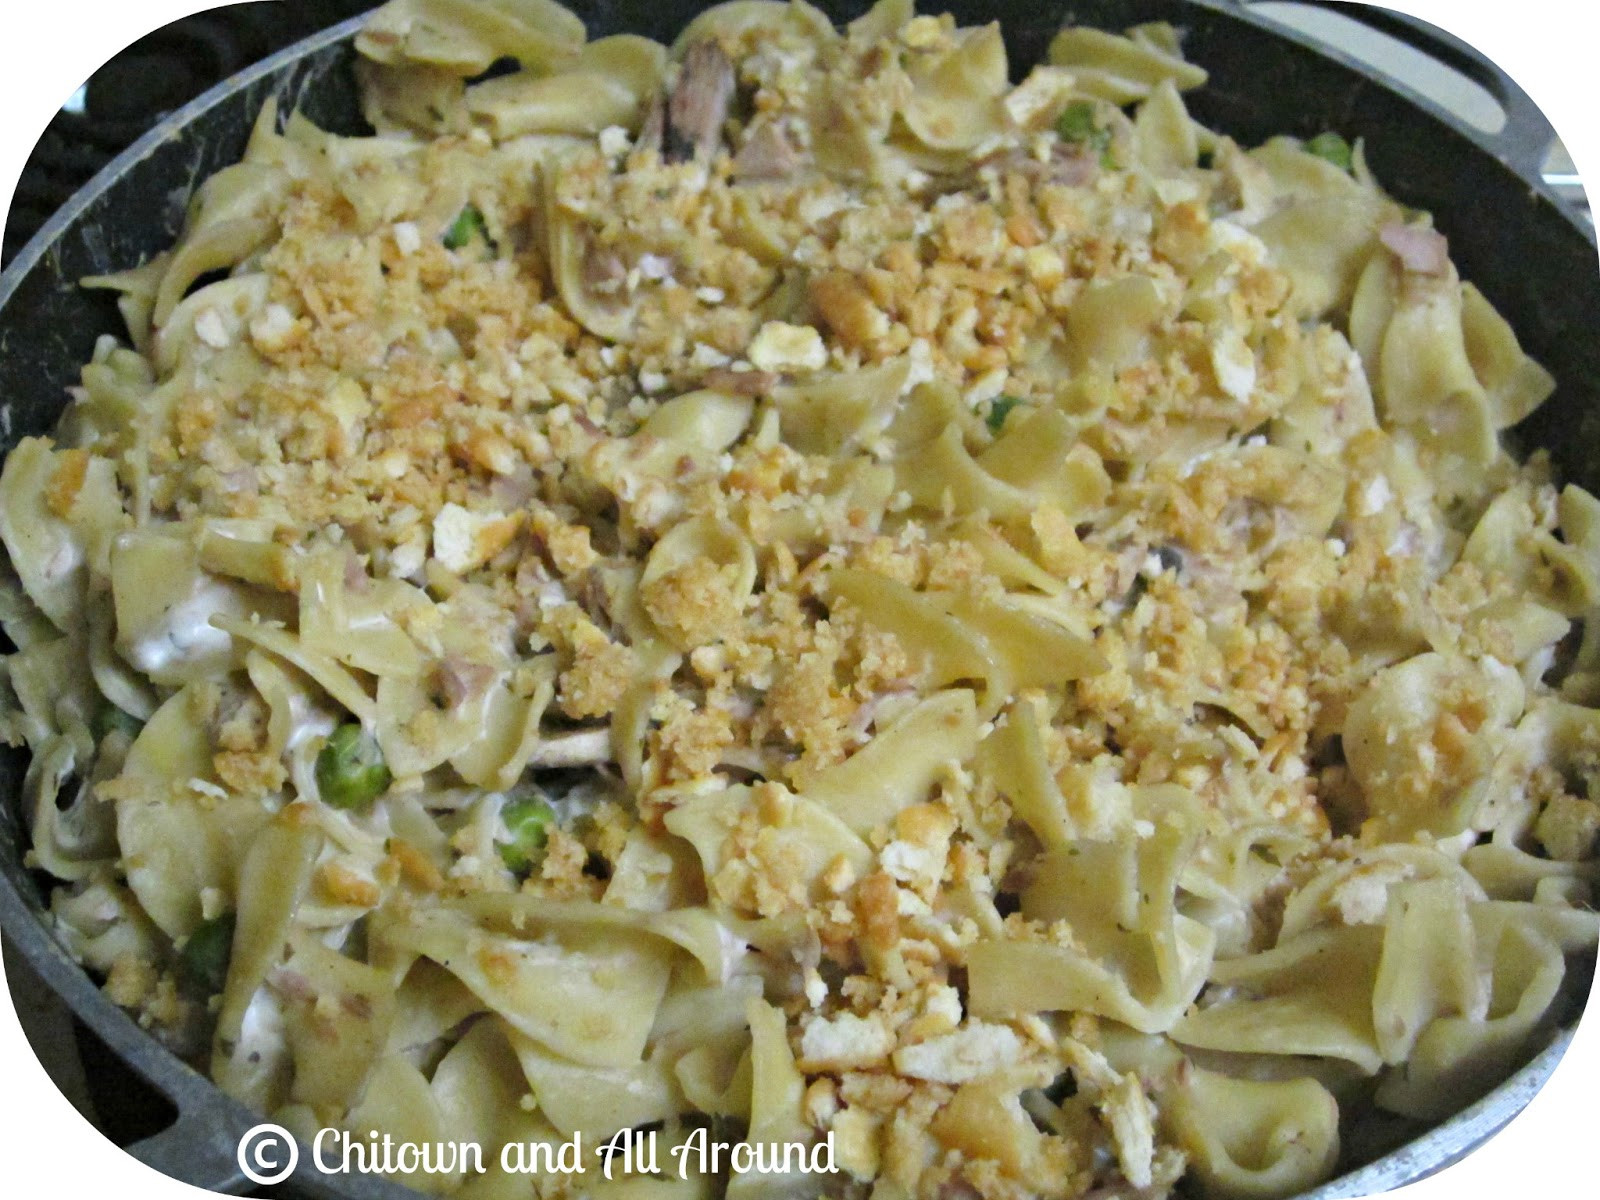 Tuna Casserole With Egg Noodles  Chitown And All Around Recipe Creamy Tuna Noodle Casserole